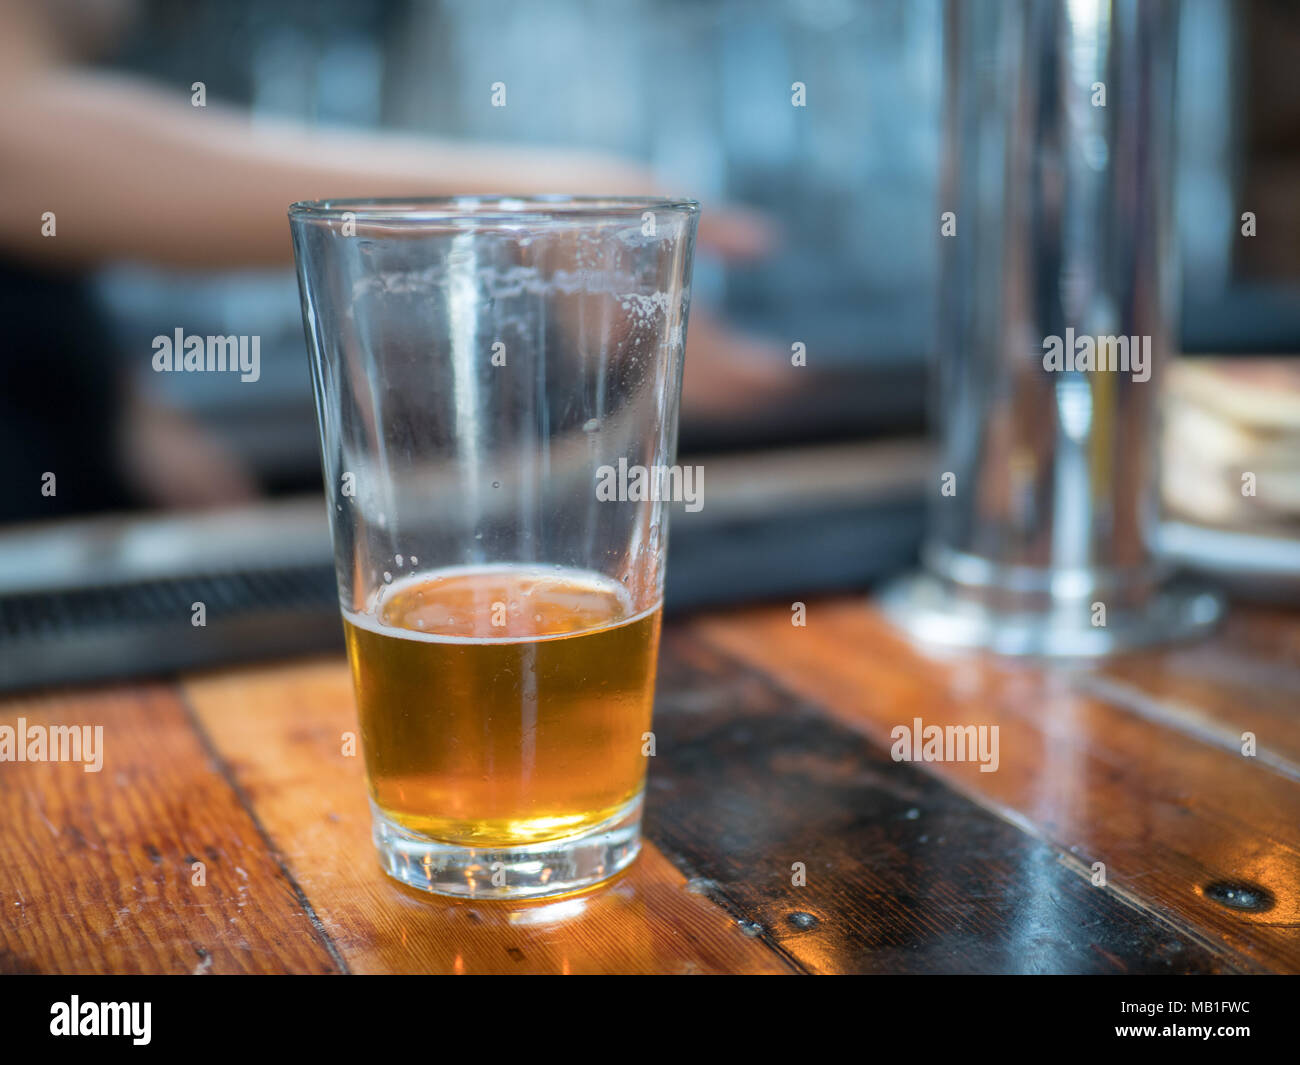 Almost empty pint glass of beer sitting on wooden bar for last call - Stock Image